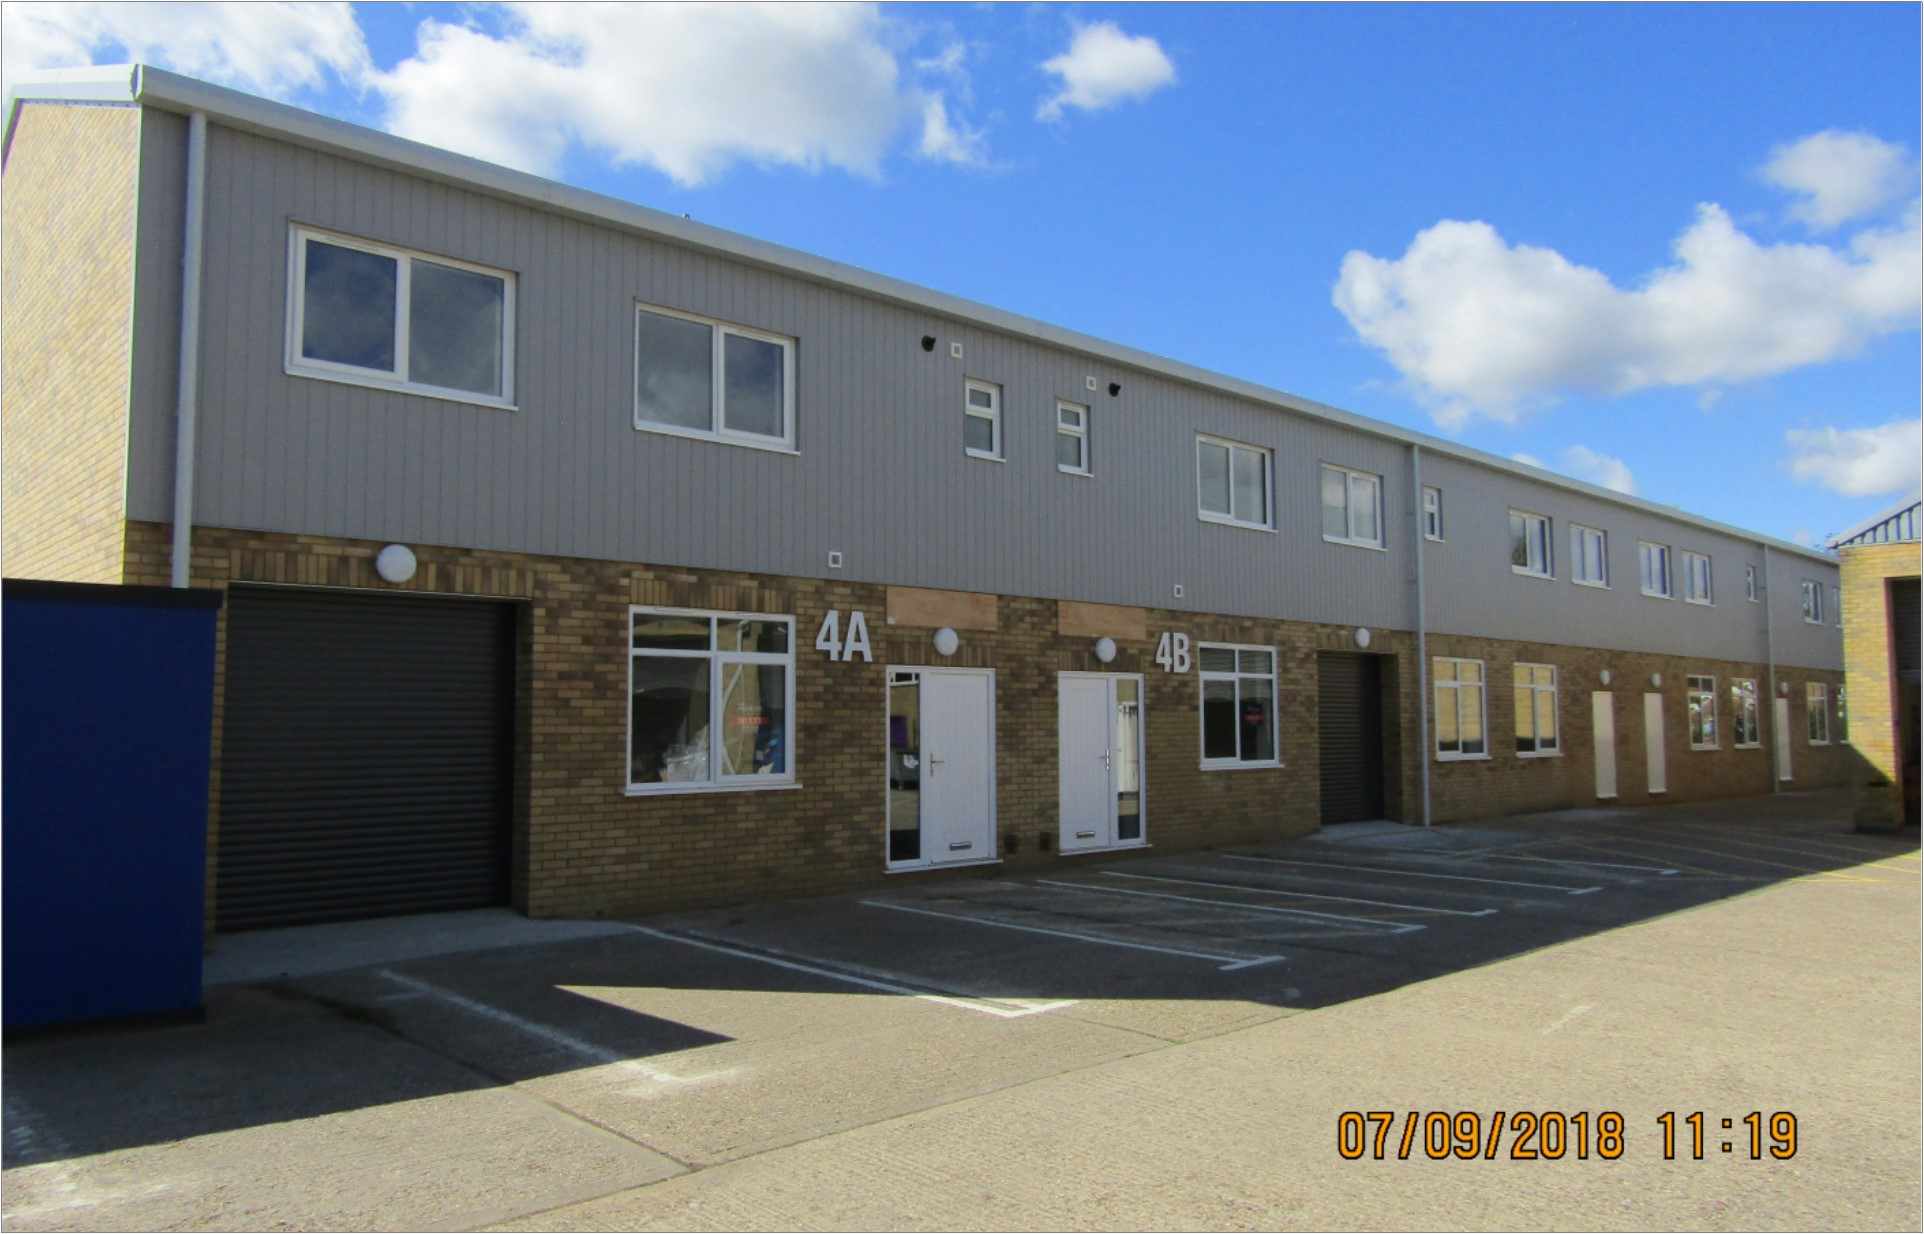 Unit 4a, Great Northern Works, Hartham Lane, Hertford